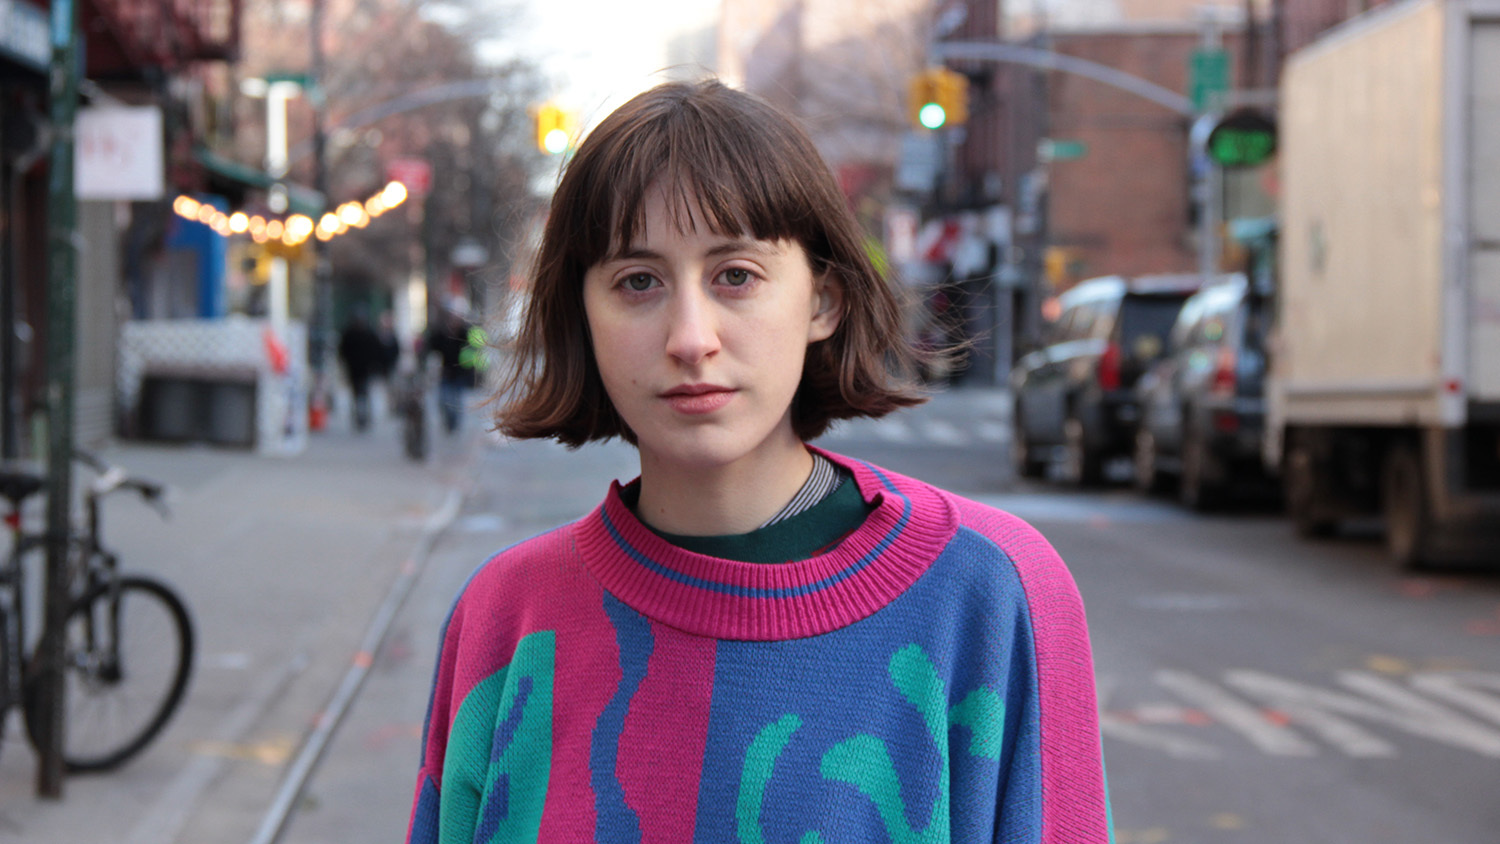 If you want to hear a new spin on an old classic: Frankie Cosmos